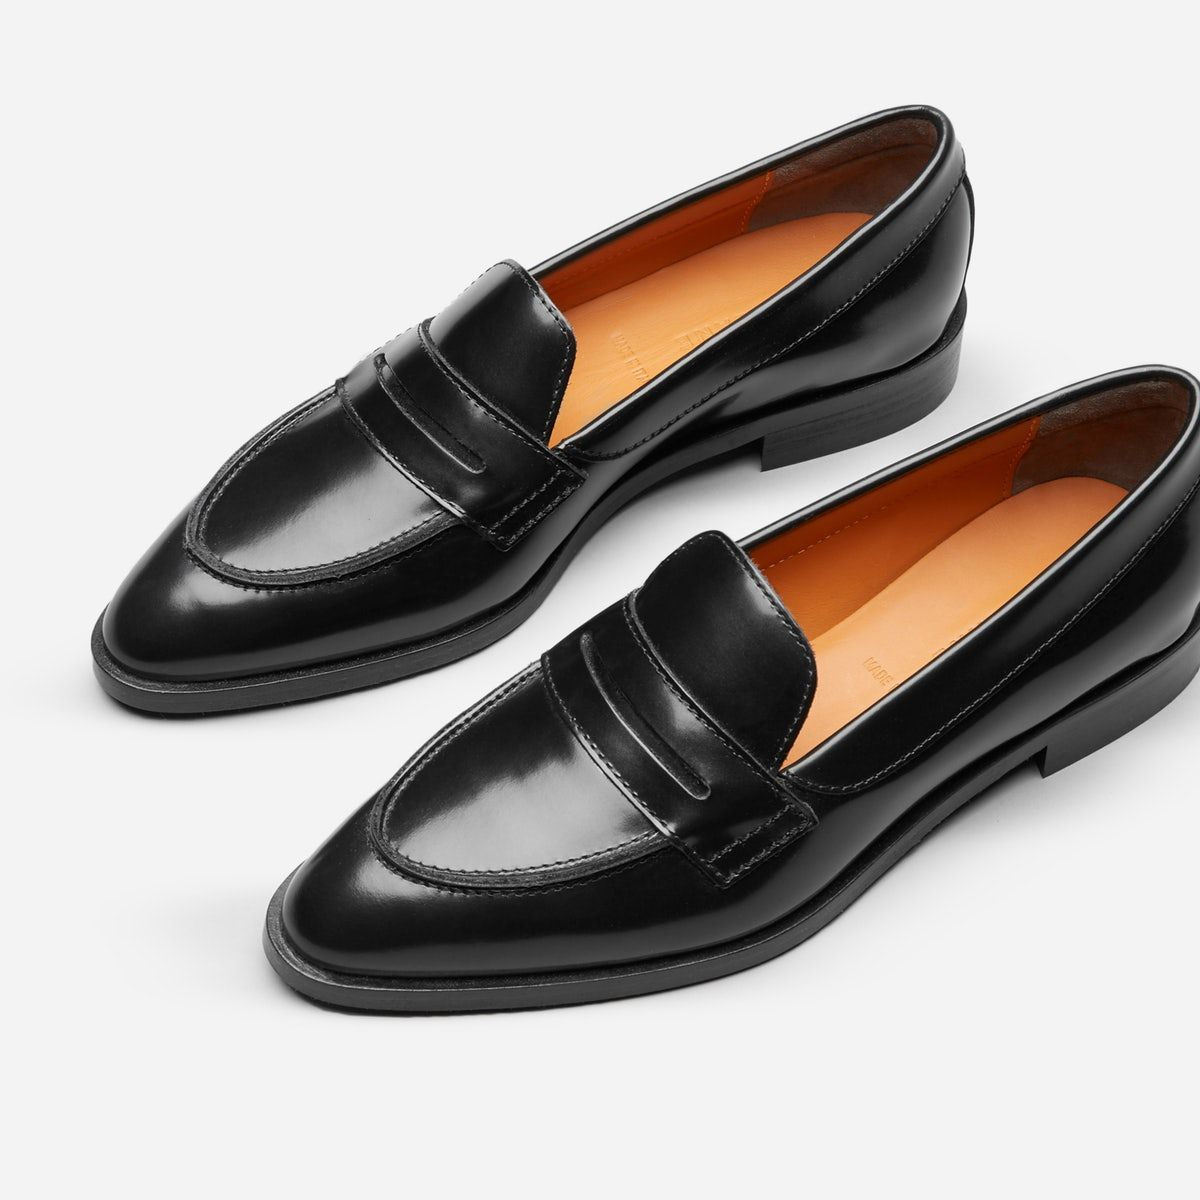 9ad42f7d66f Women s Modern Penny Loafer